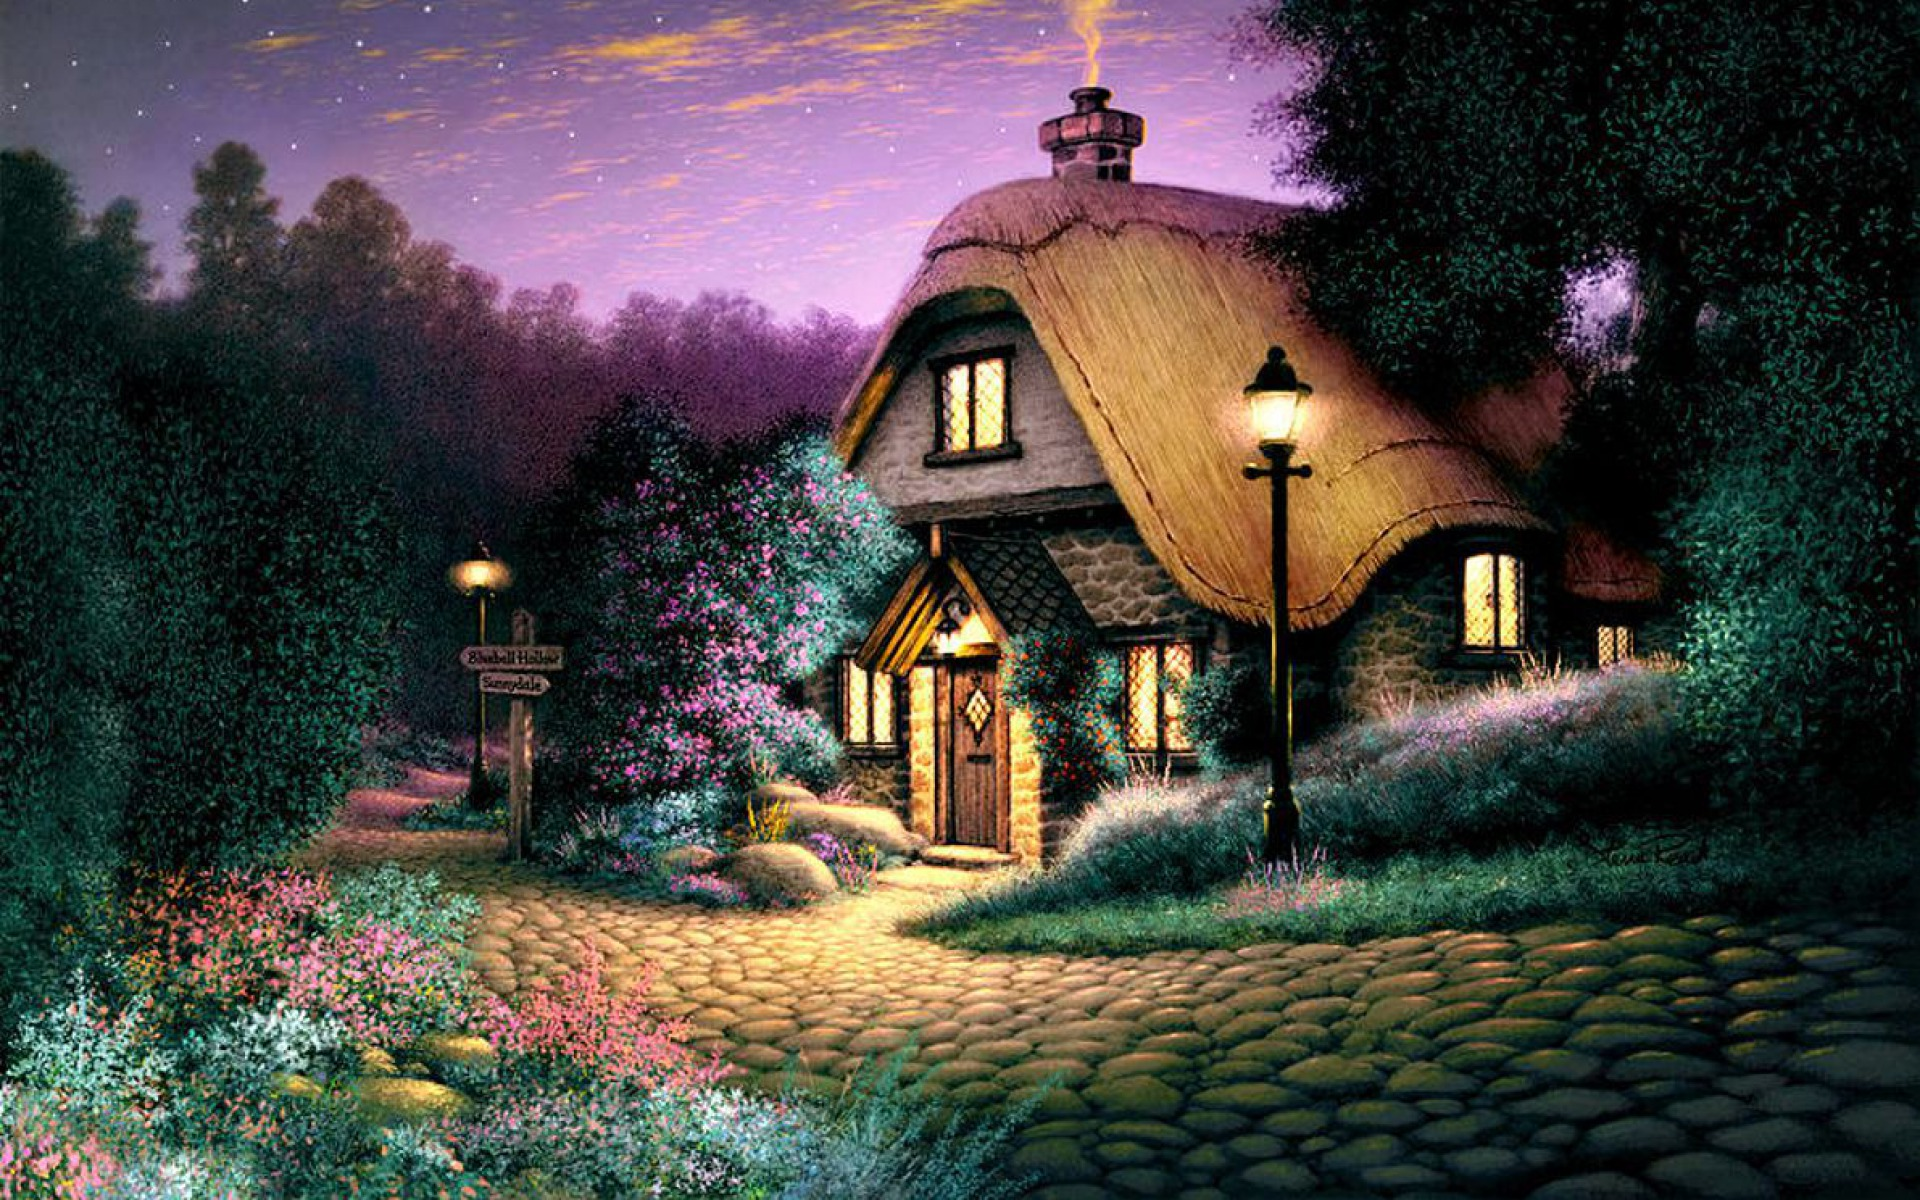 Cottage Cobblestone Evening wallpapers | Cottage ...